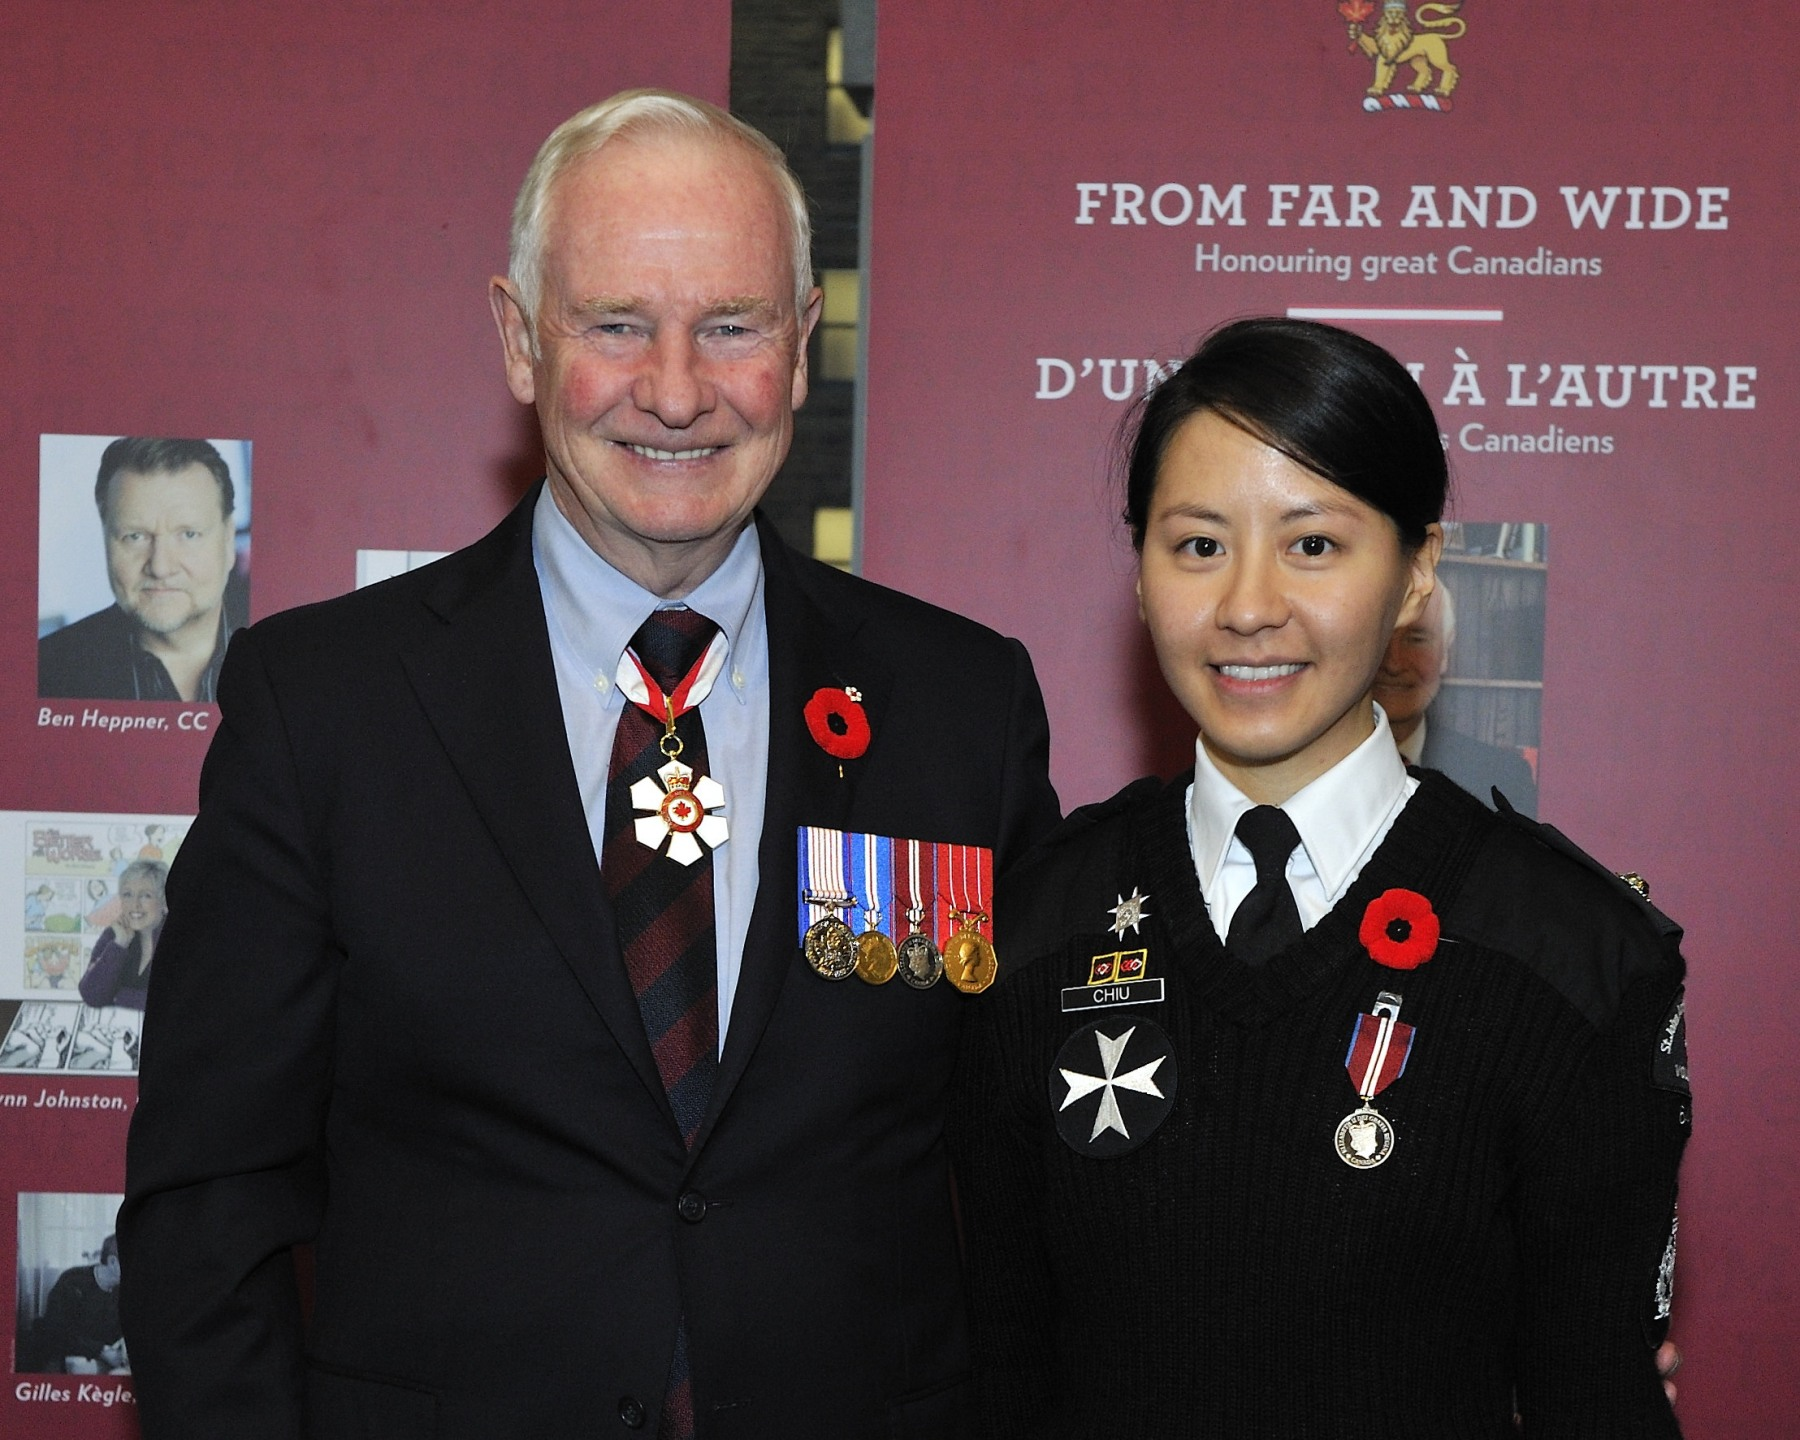 Judy Chiu (Burnaby, British Columbia) is recognized for her dedication as a mentor to younger volunteers and as a member of the St. John Ambulance Cadet Division.